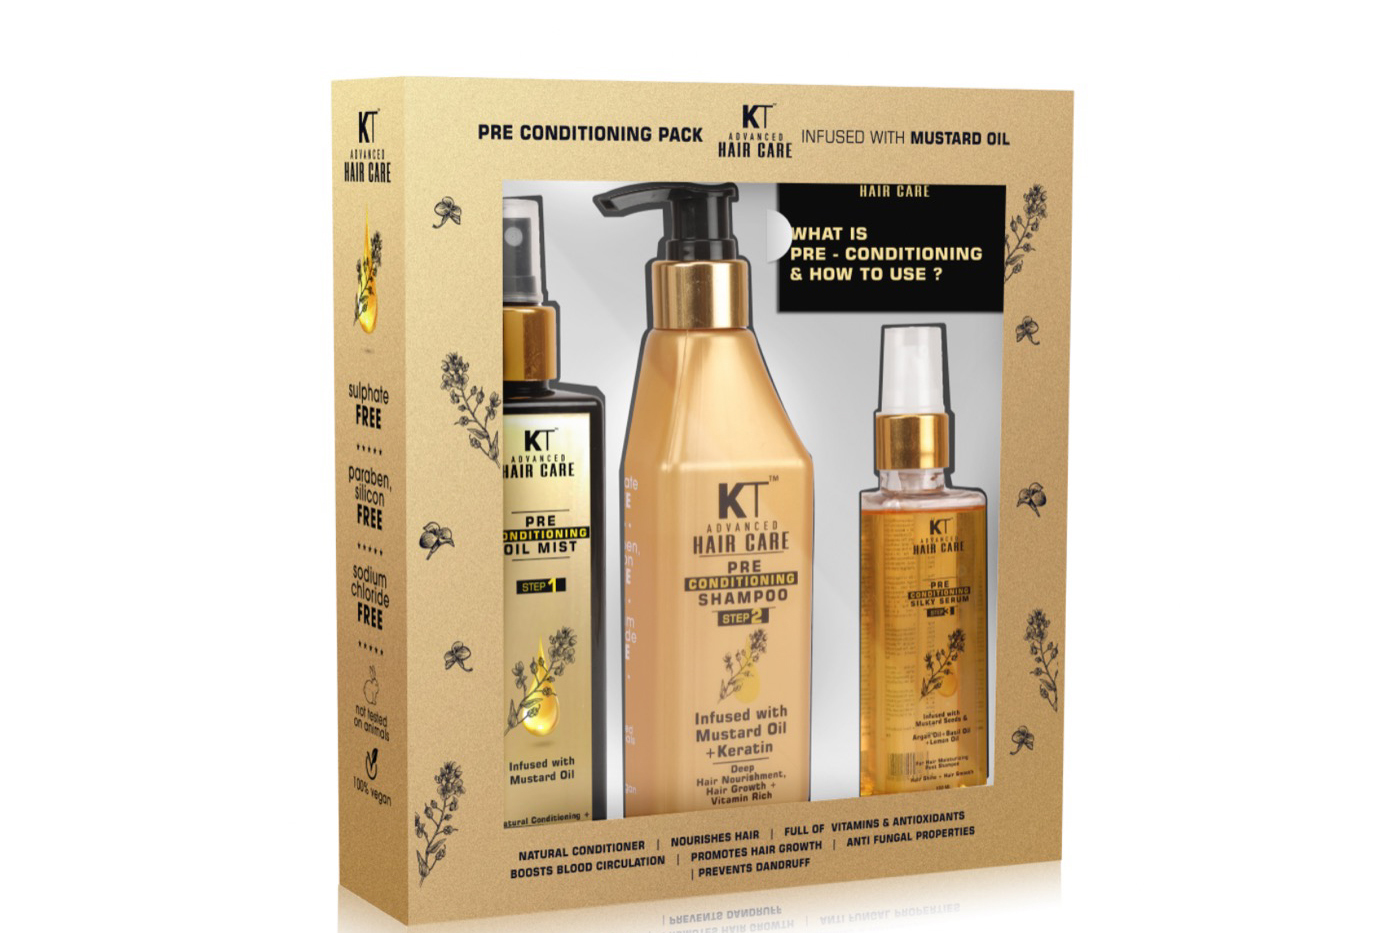 KT Professional brings Advanced Haircare Solutions